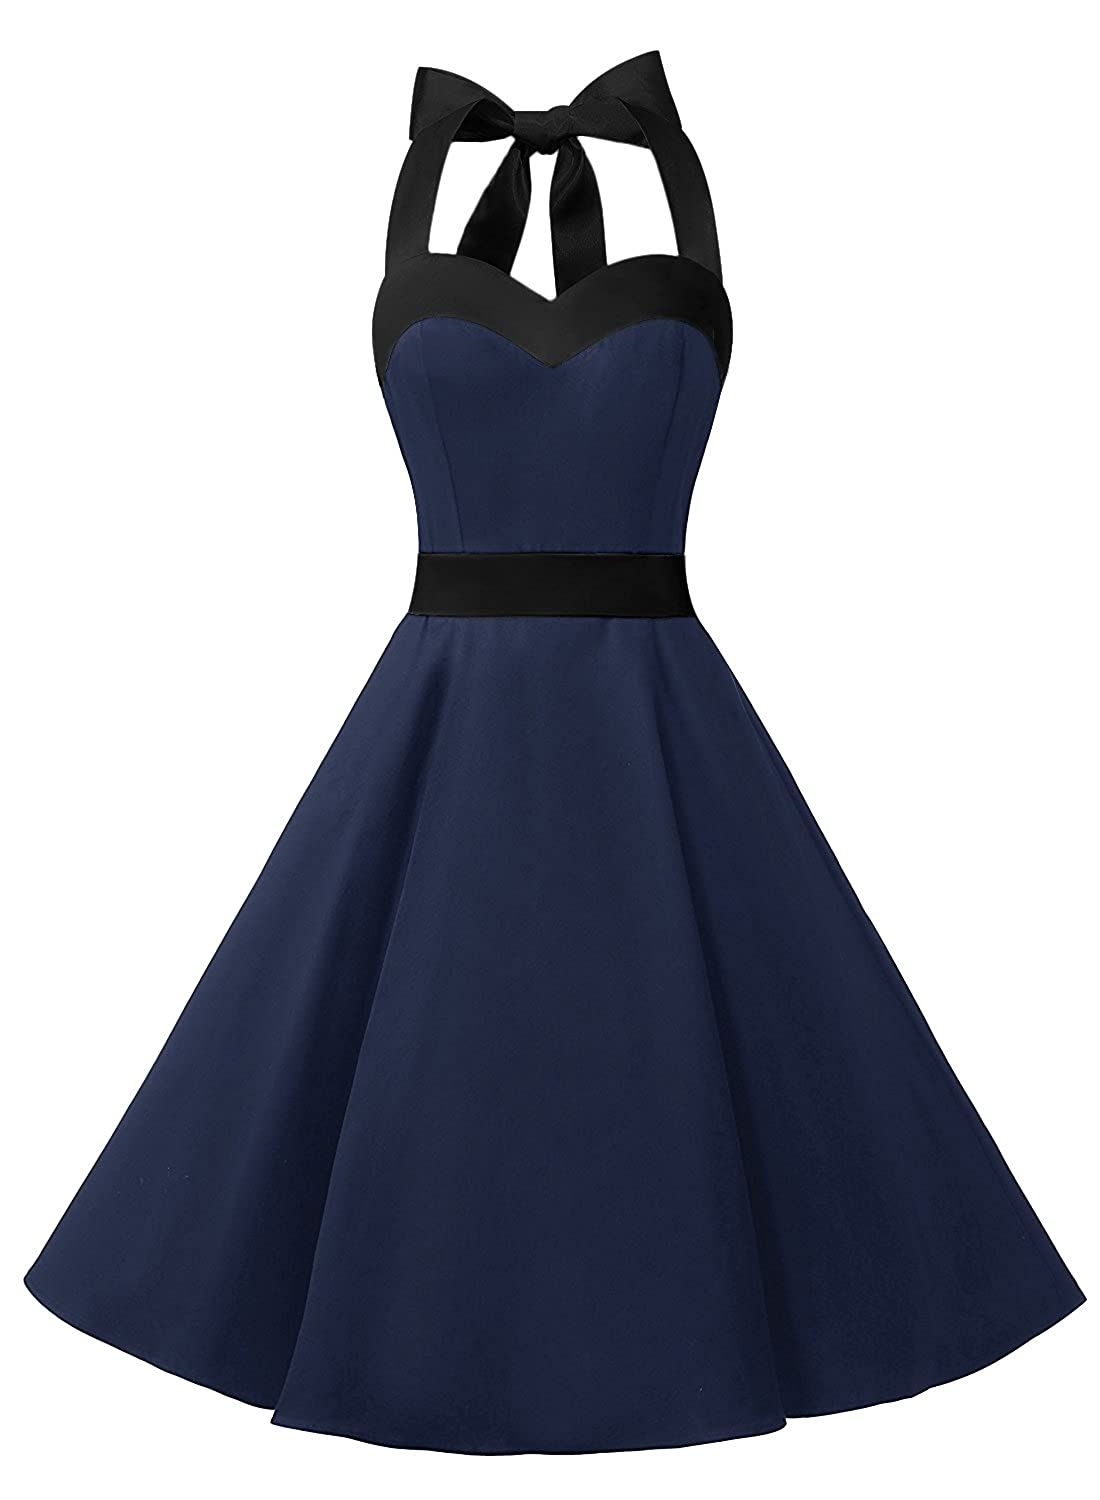 TALLA 3XL. Dresstells® Halter 50s Rockabilly Polka Dots Audrey Dress Retro Cocktail Dress Navy Black 3XL